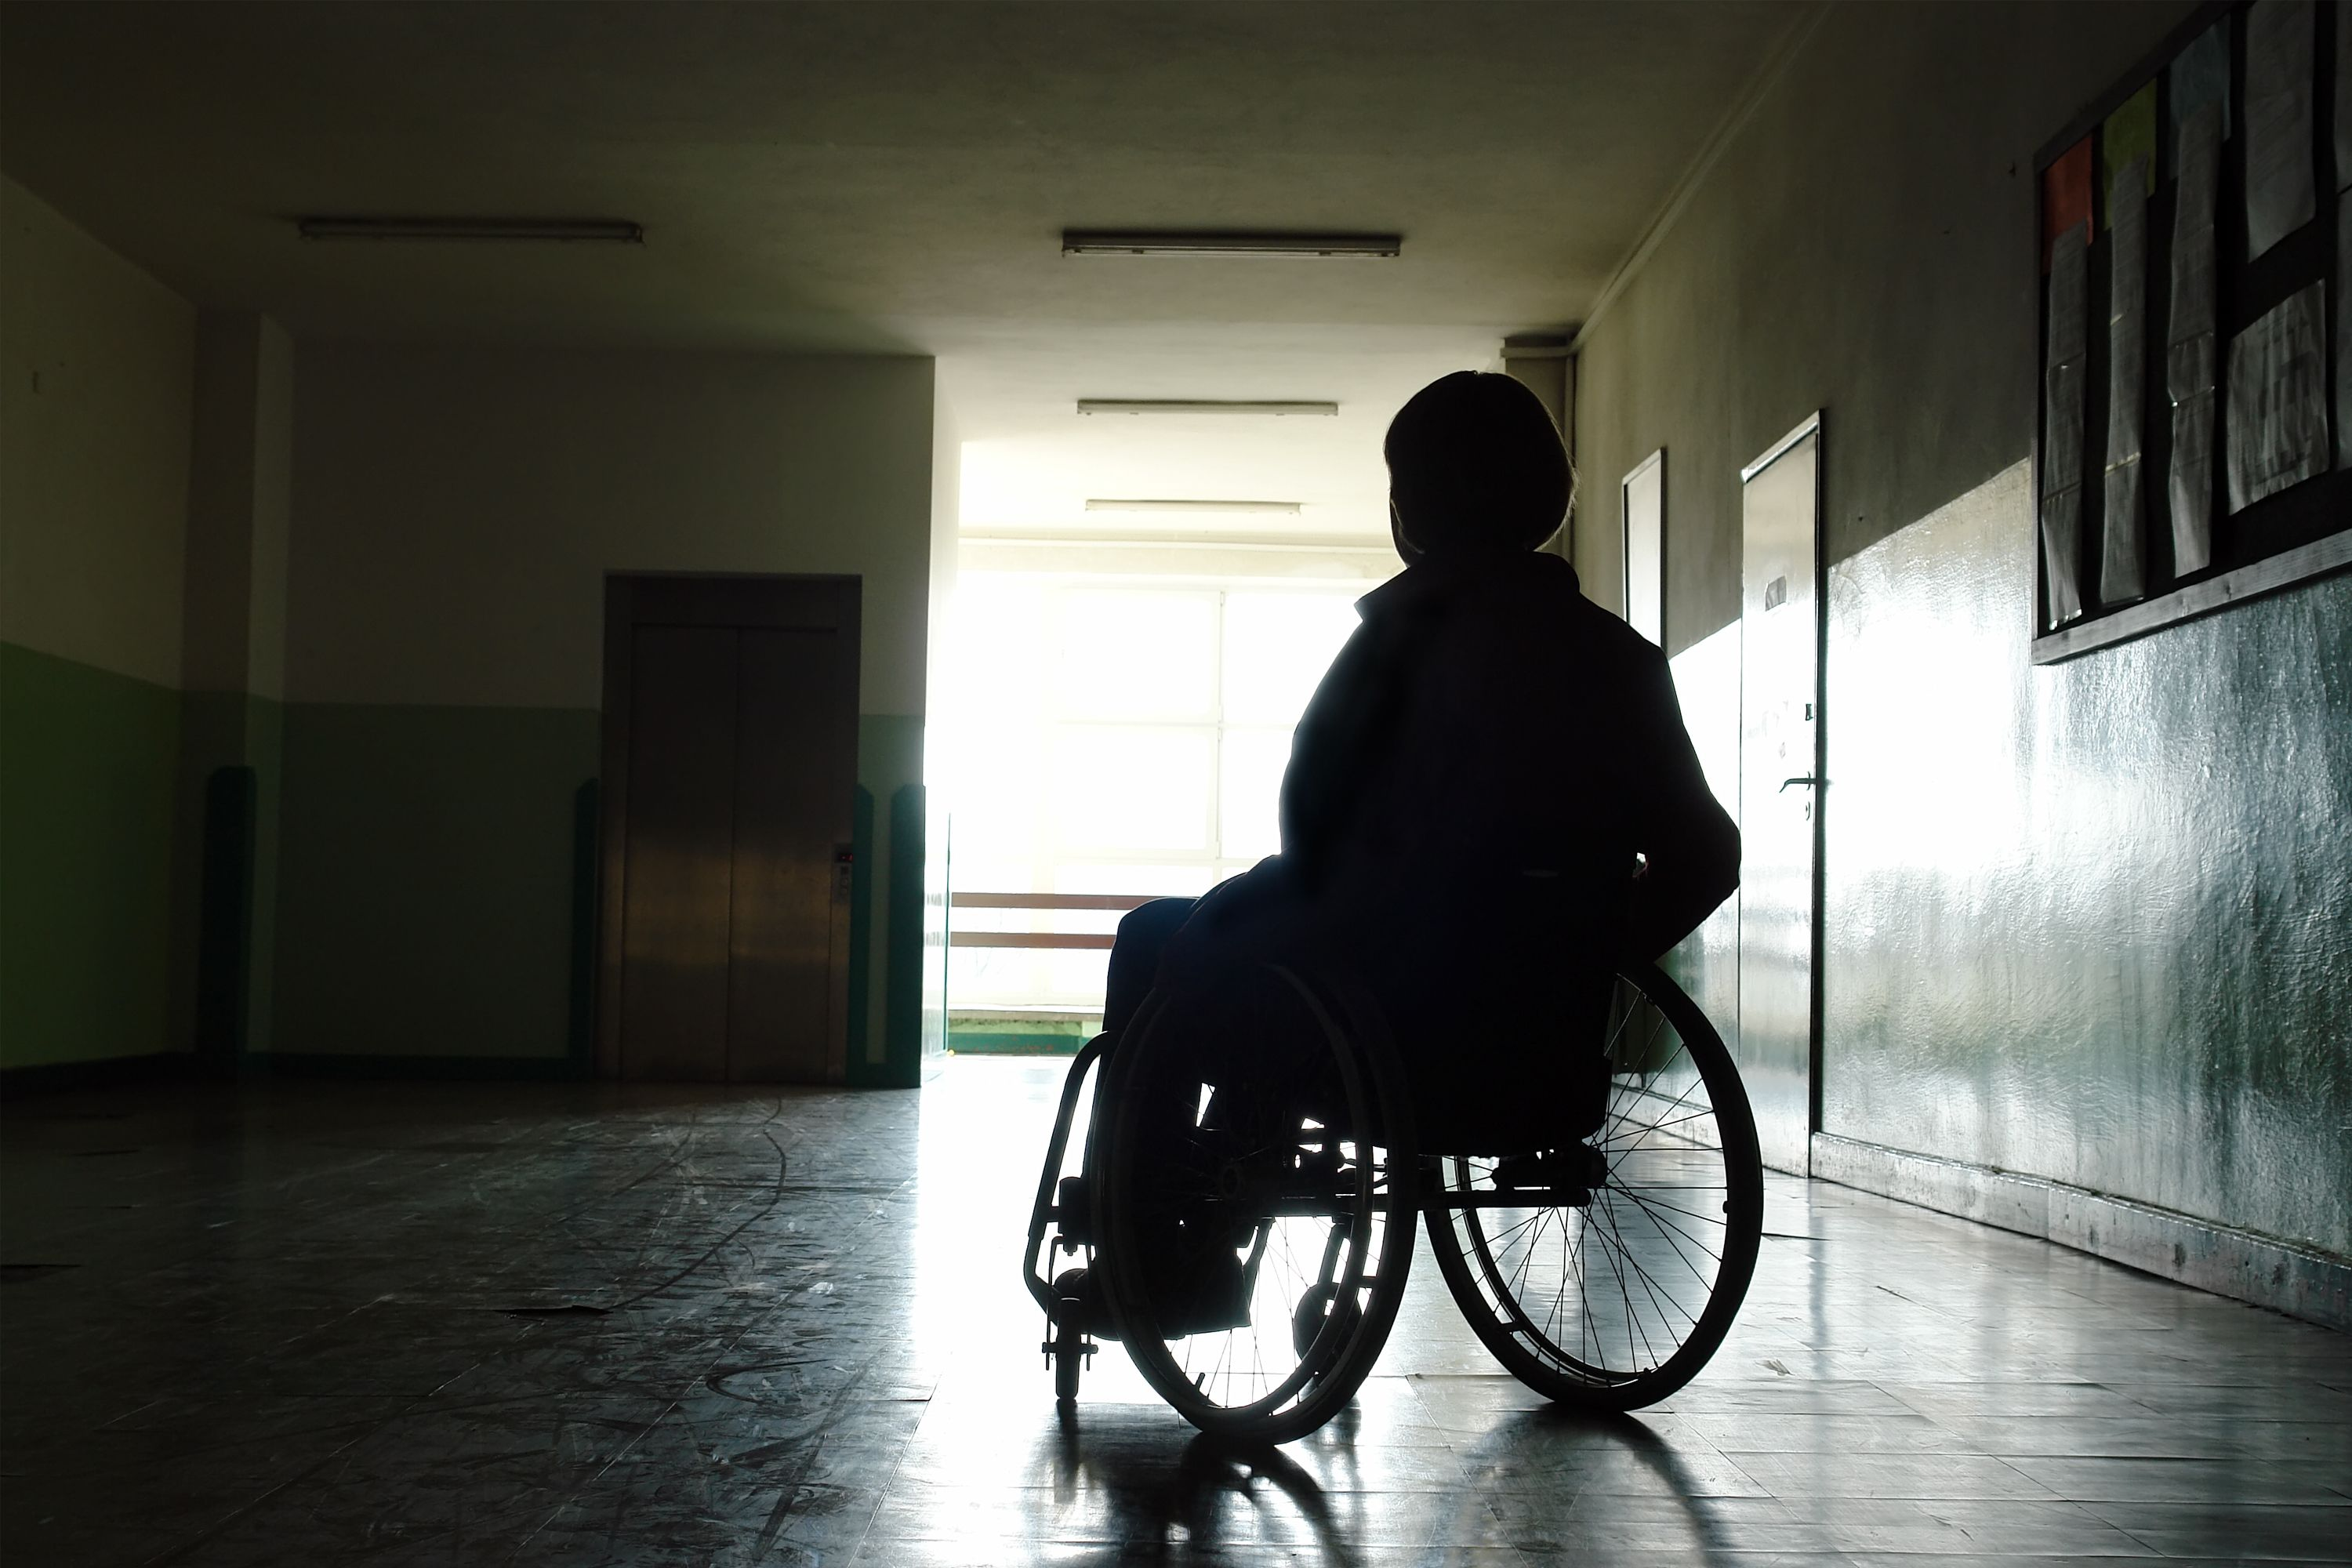 A person in a wheelchair in a dark hallway